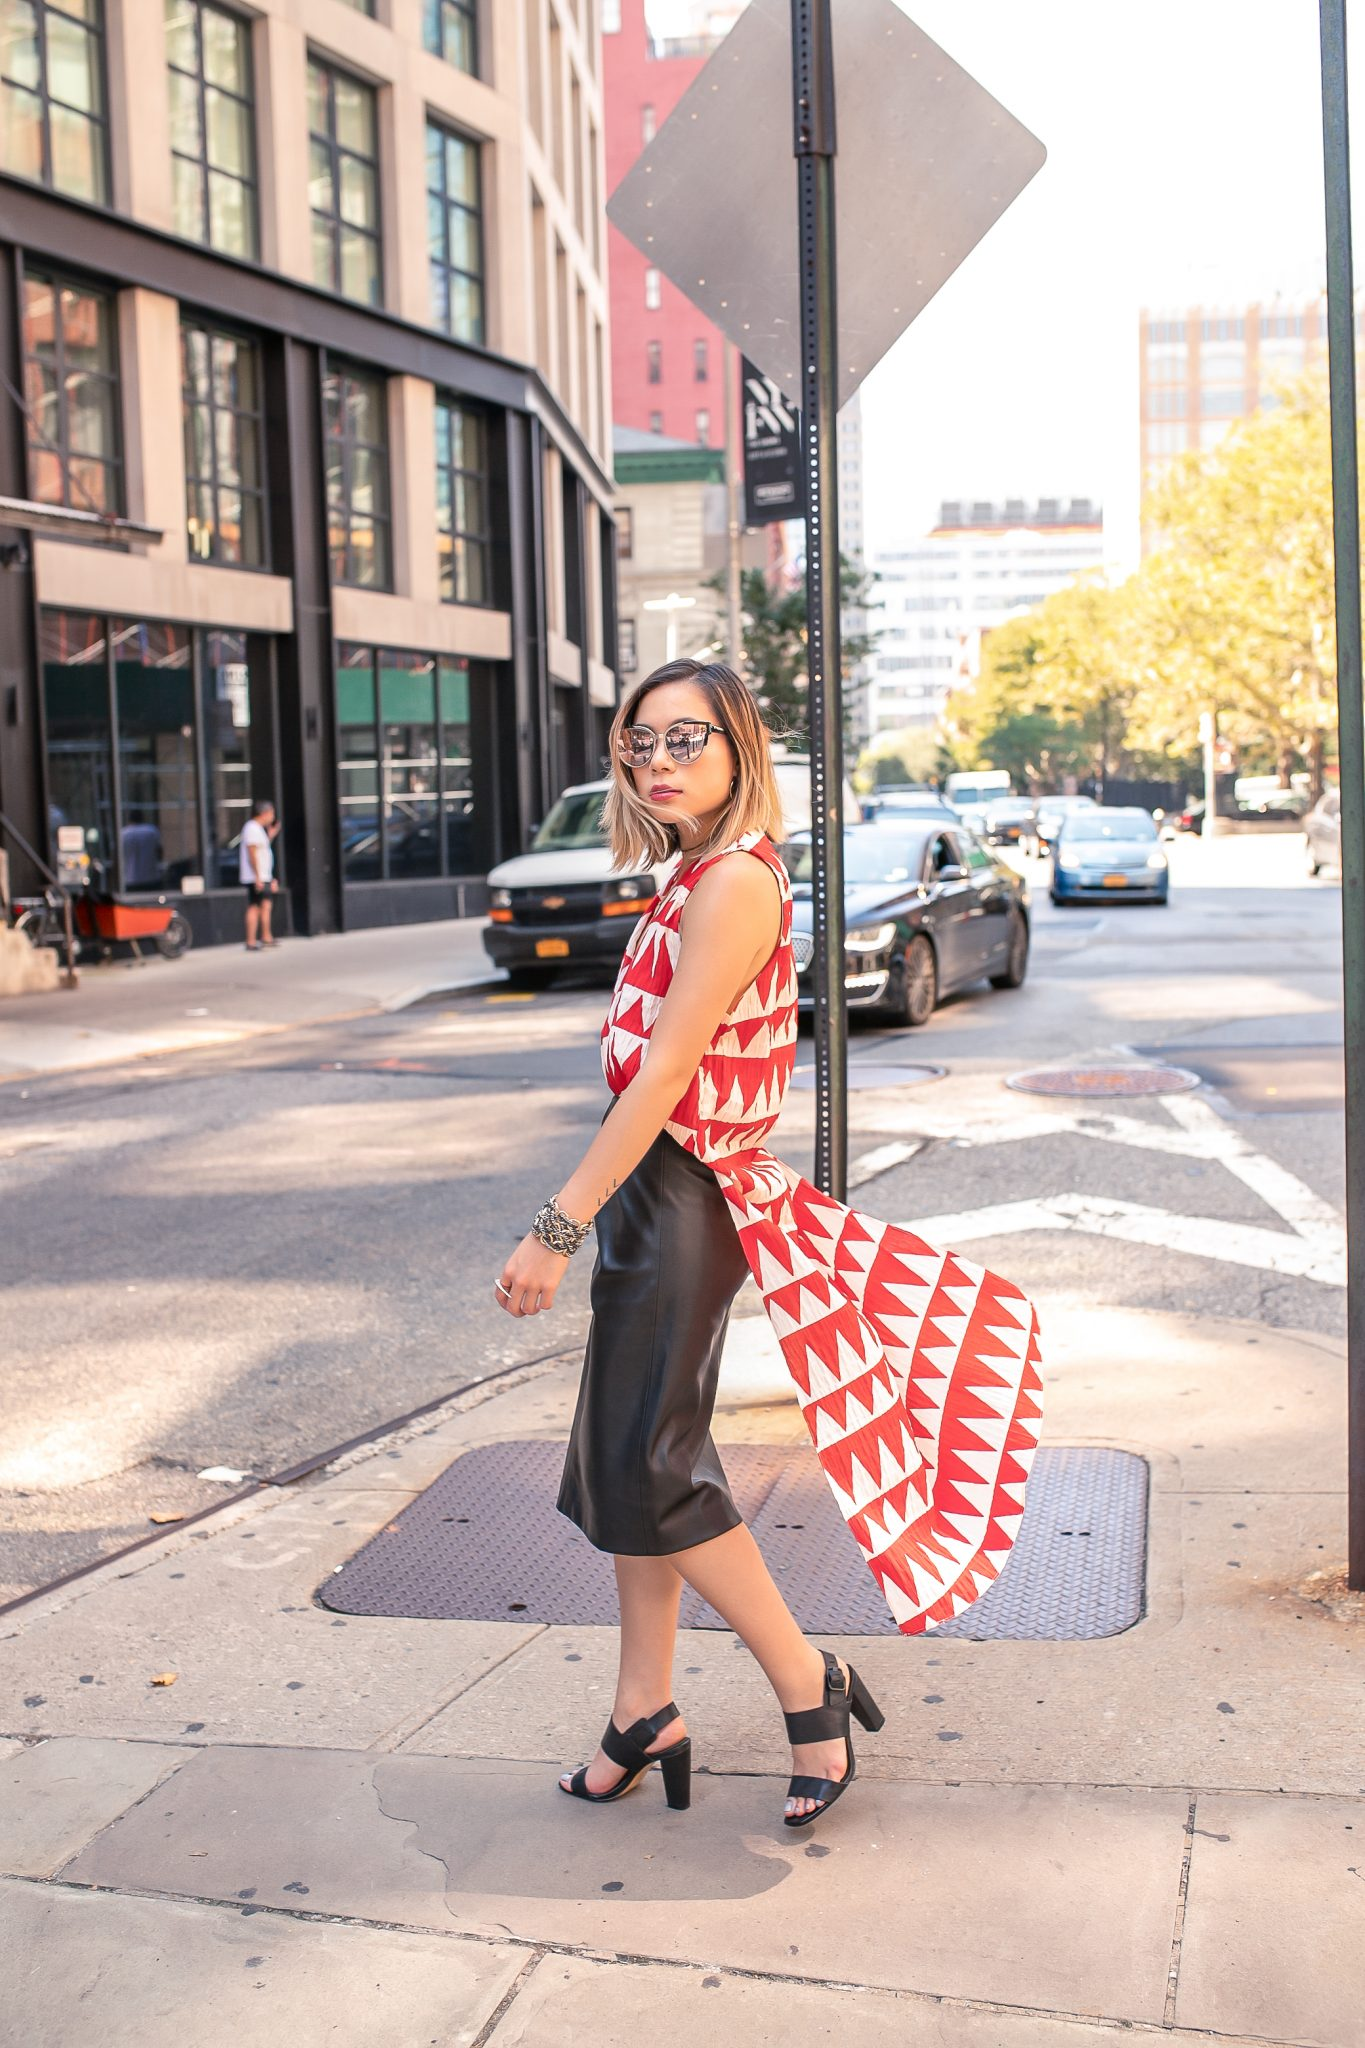 FashionPalette harvey the label nyfw 2018 new york fashion week blouse snakeskin doris dorothea kasey ma thestylewright brook and york lord and taylor zara camille jewelery